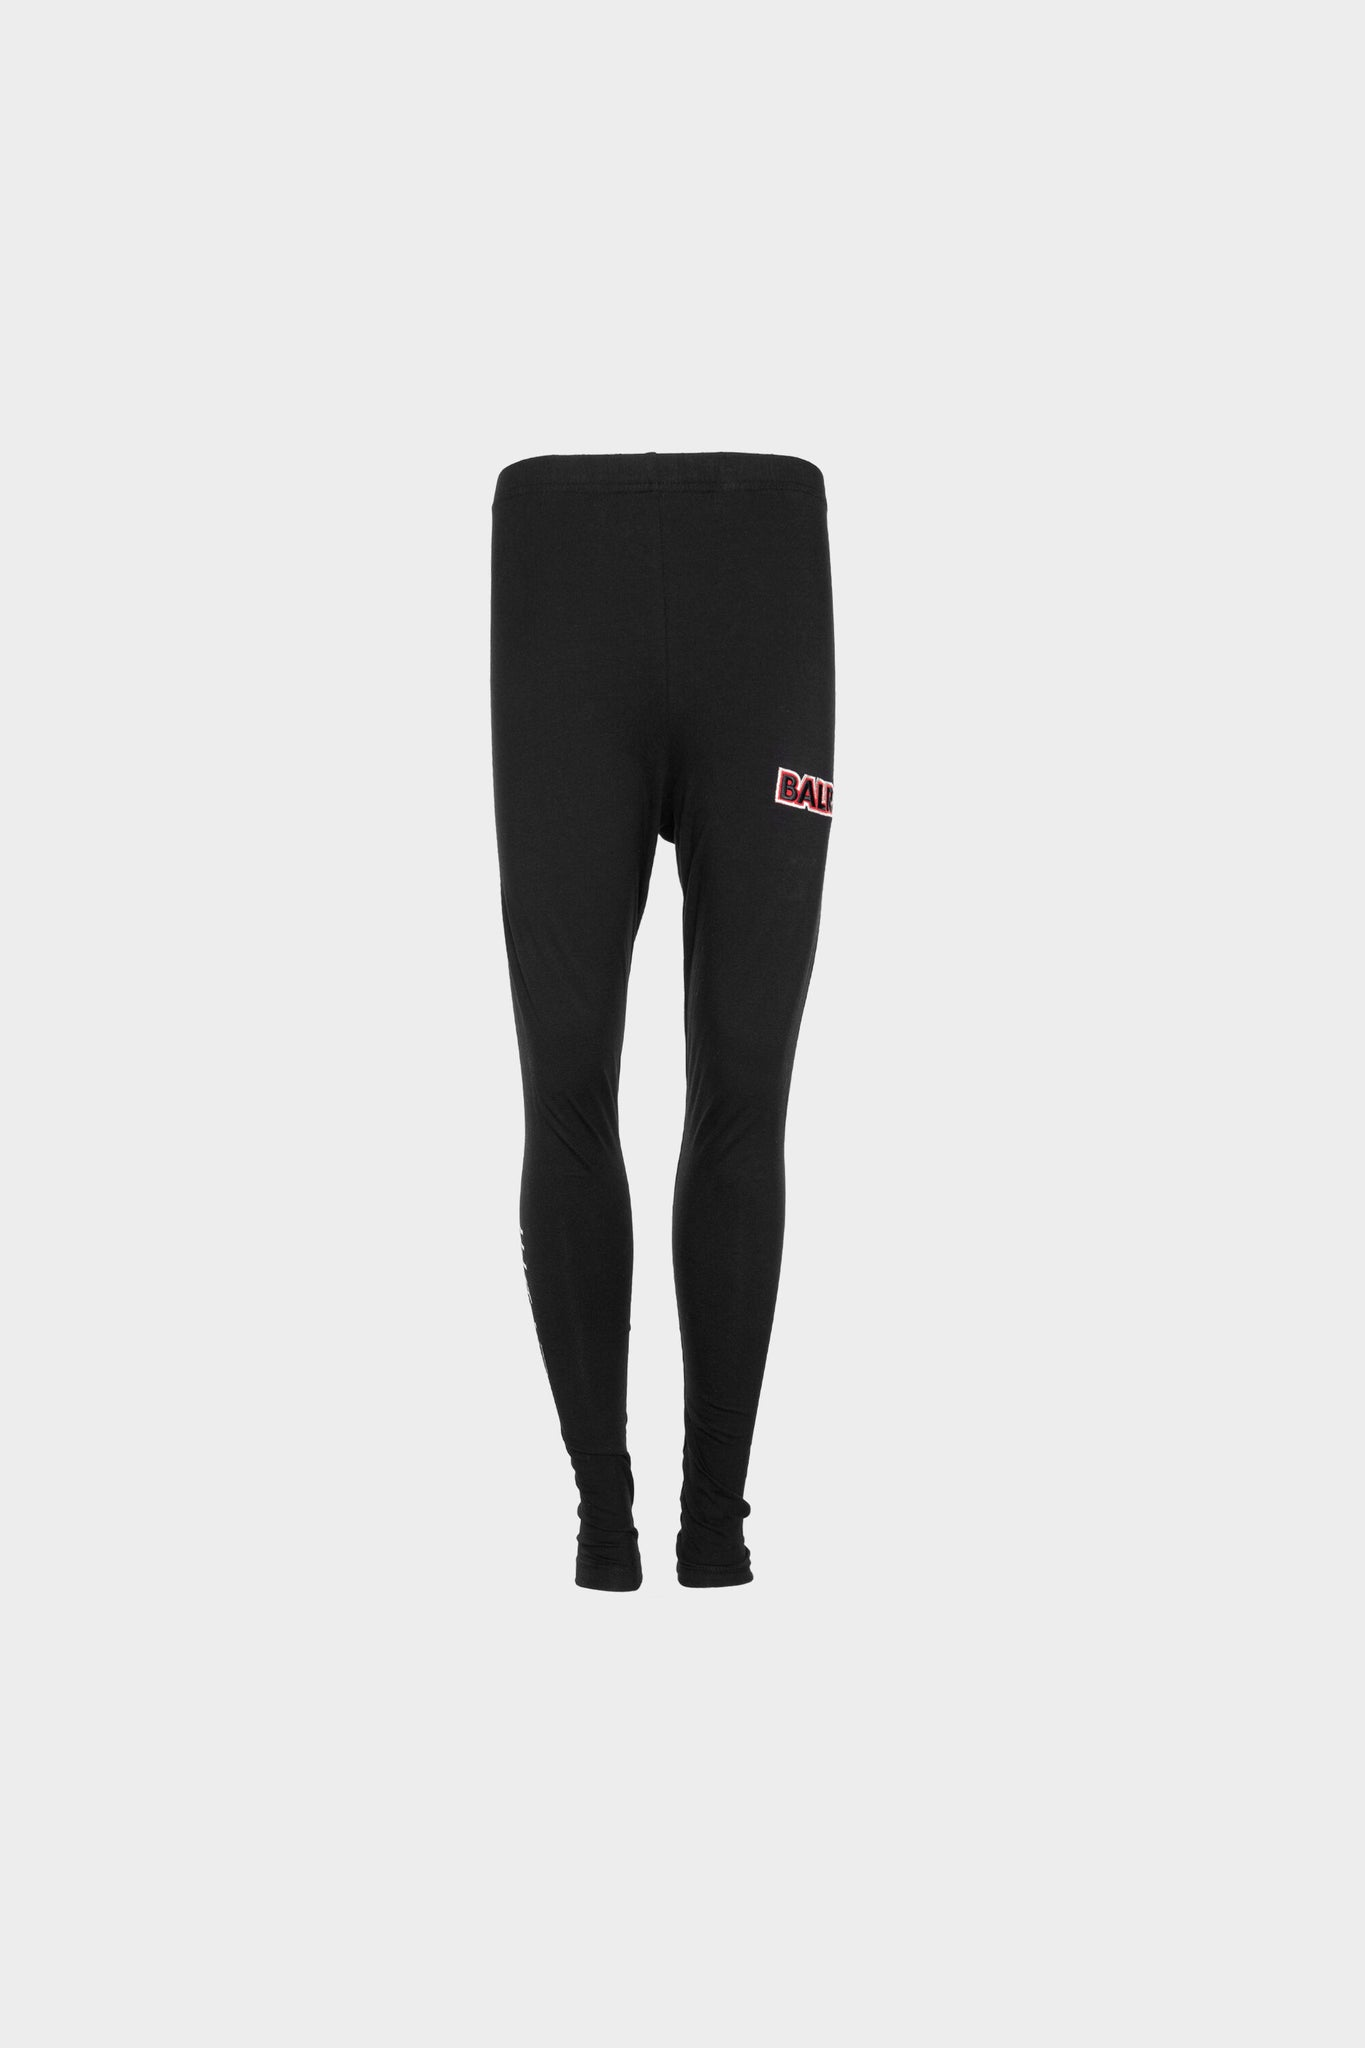 BALR. Embro Legging Women Black